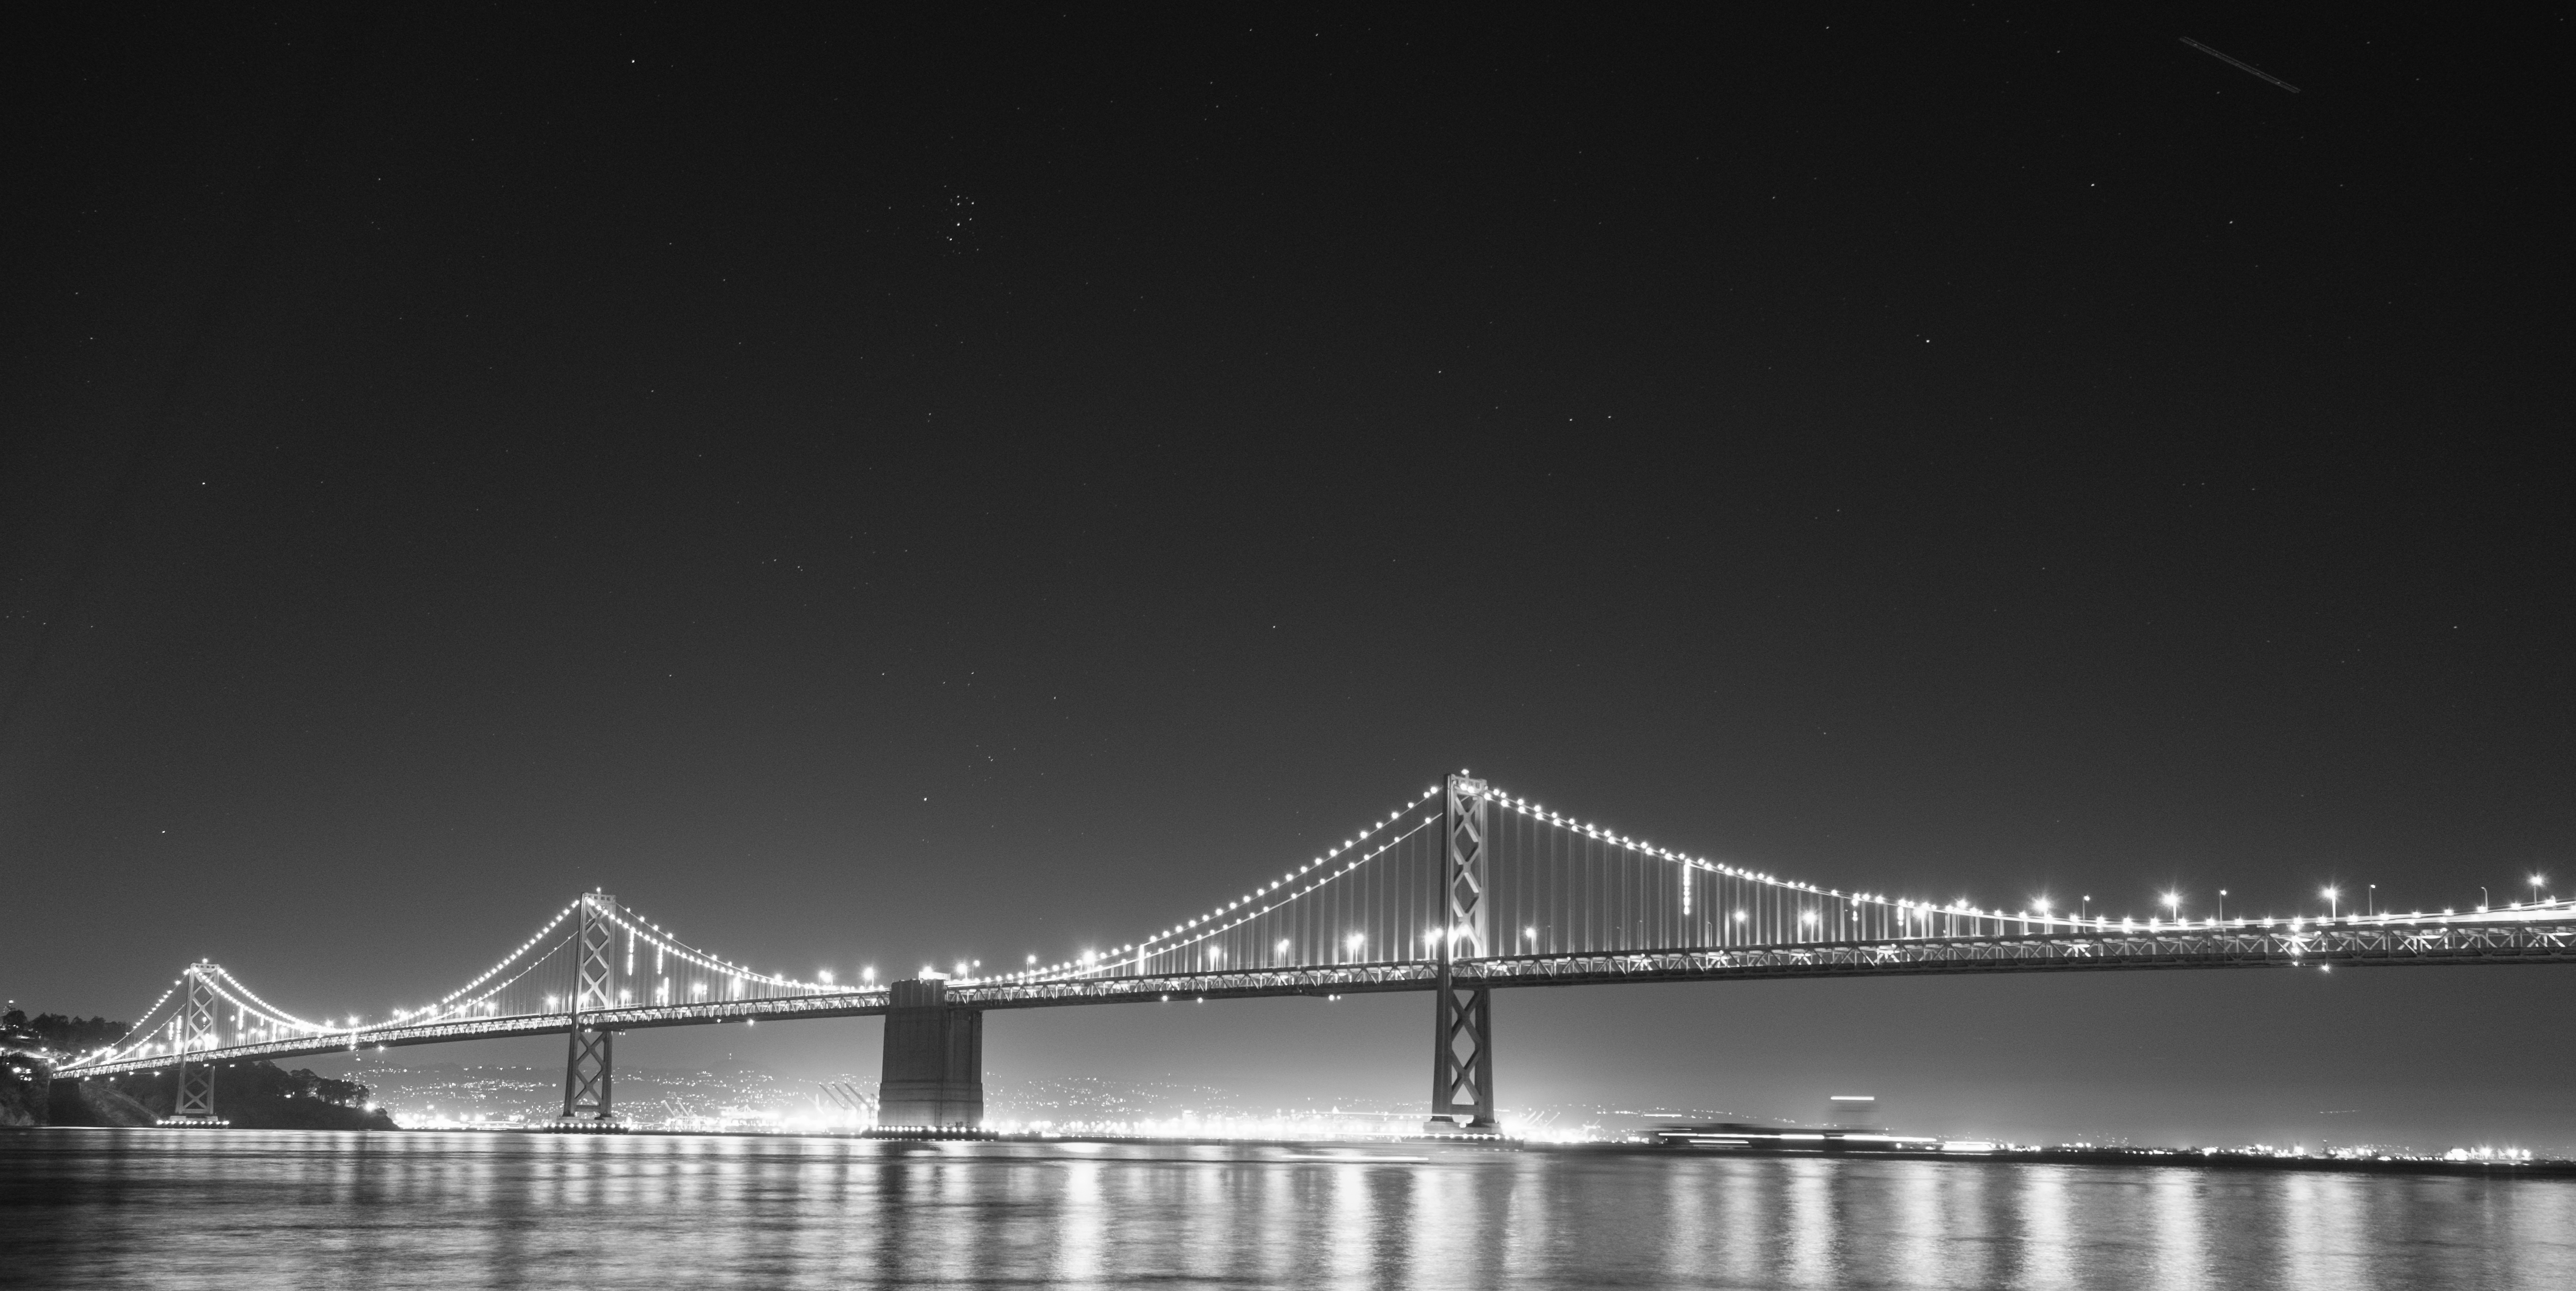 A night time photo of the Bay Bridge.